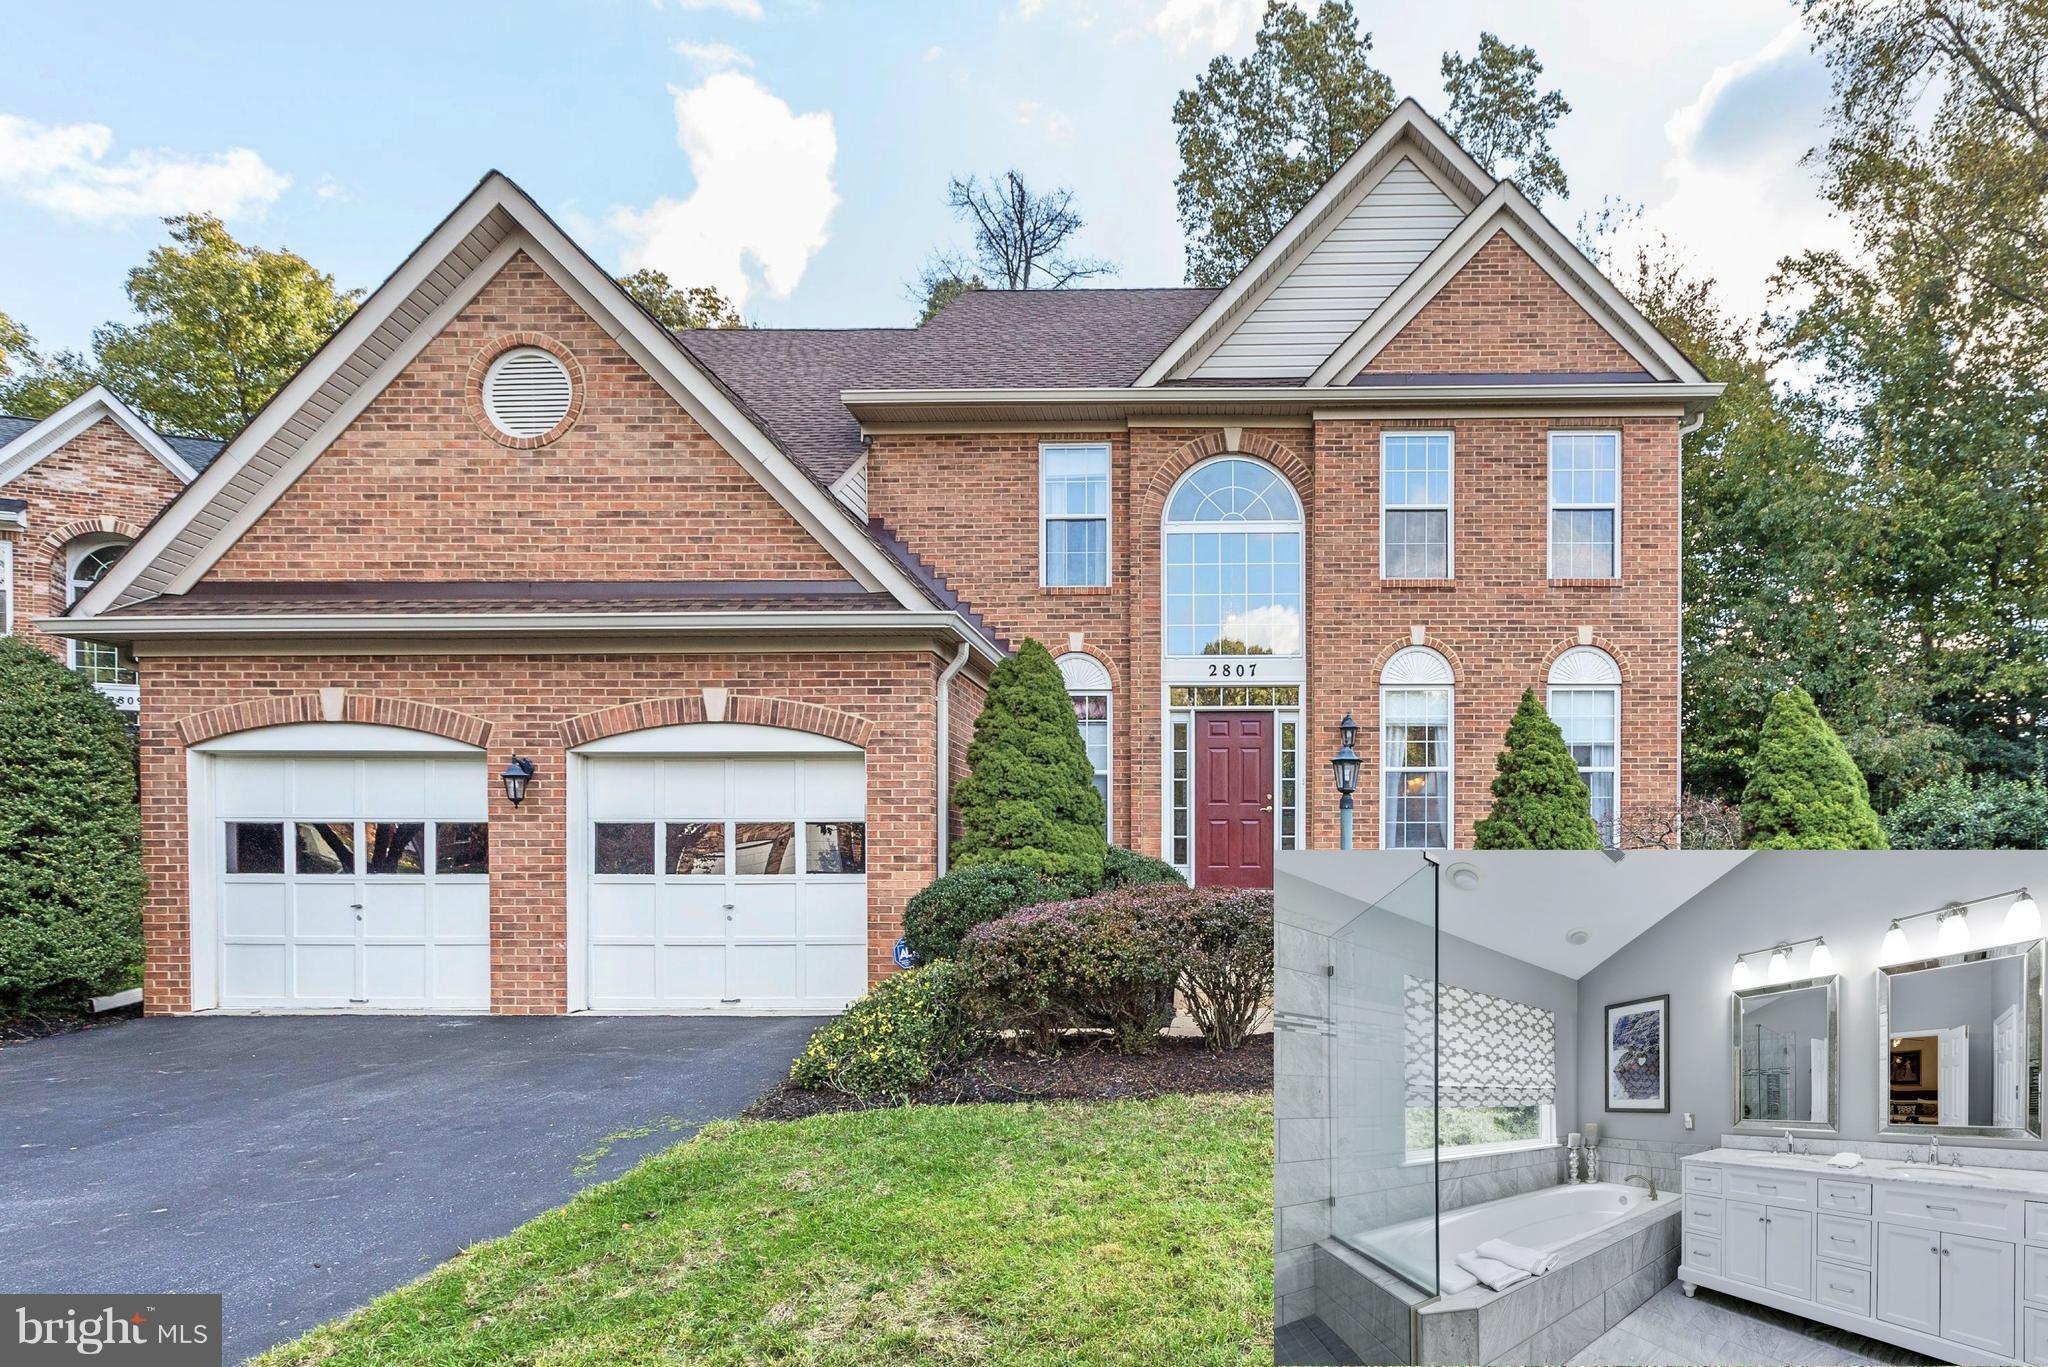 2807 ANDY COURT, CROFTON, MD 21114